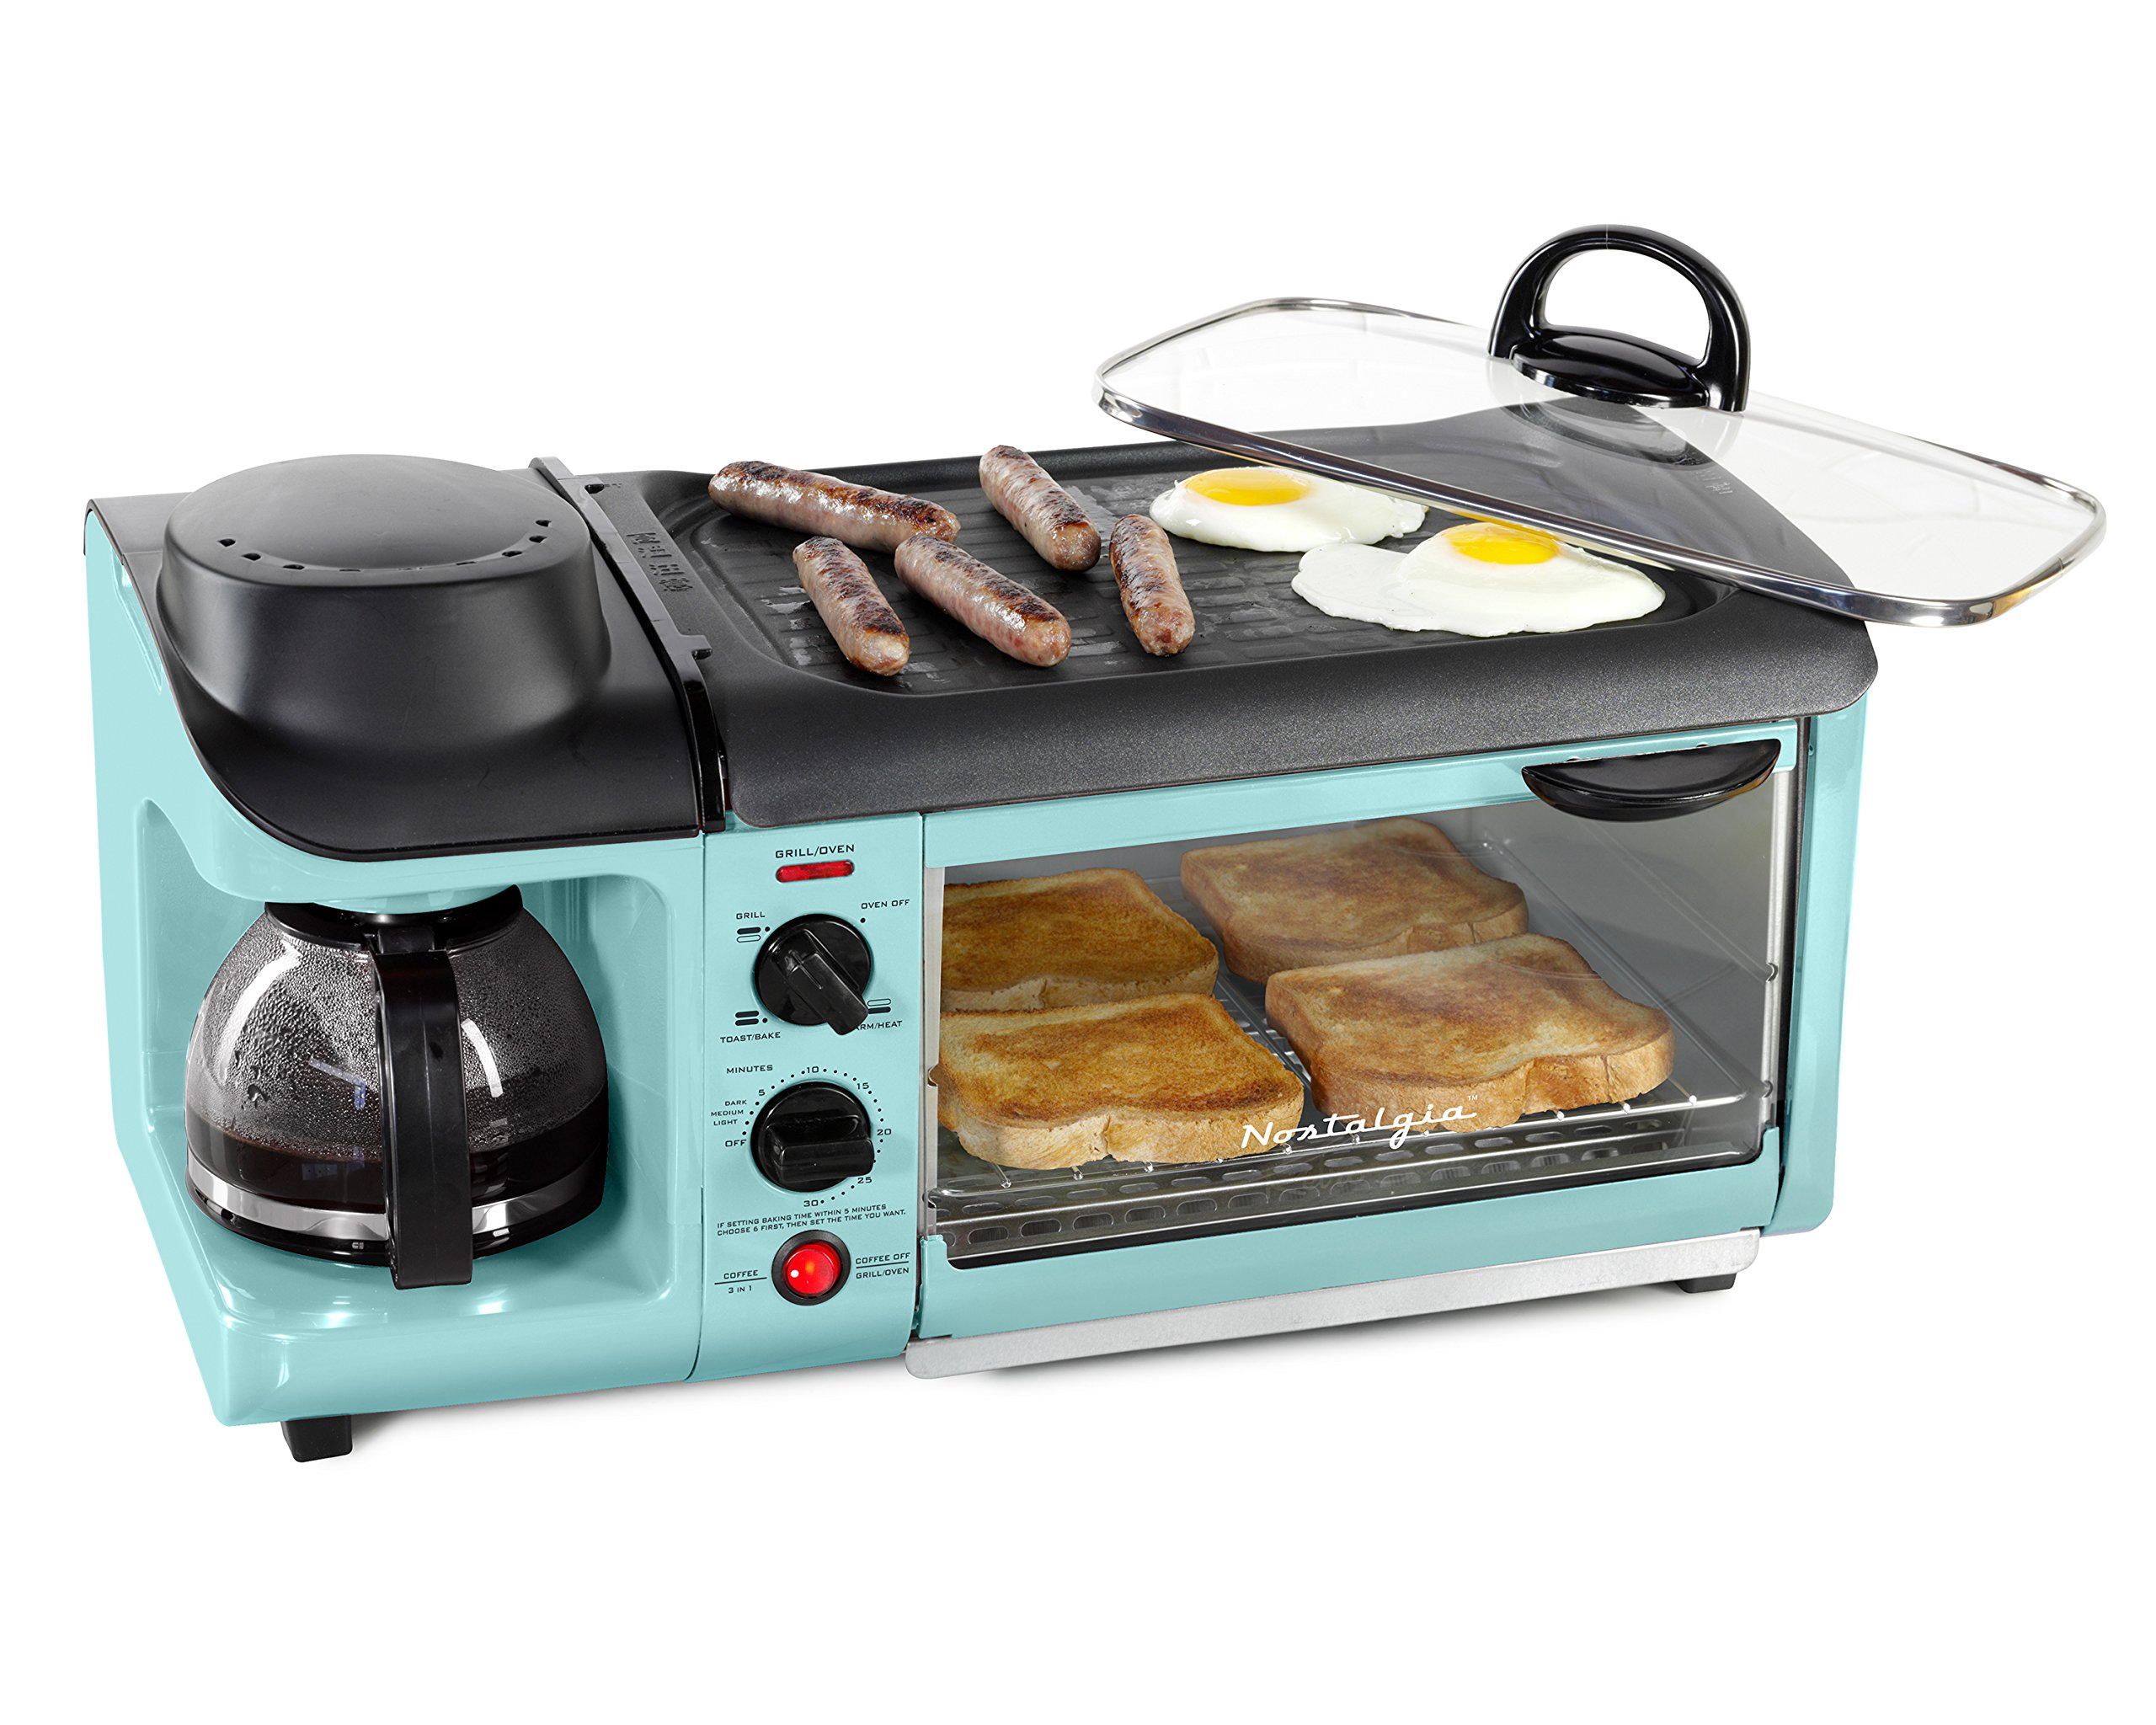 NOSTALGIA BSET300AQ Retro 3-in-1 Family Size Breakfast Station, Coffeemaker, Toaster Oven, Griddle, Aqua by Nostalgia